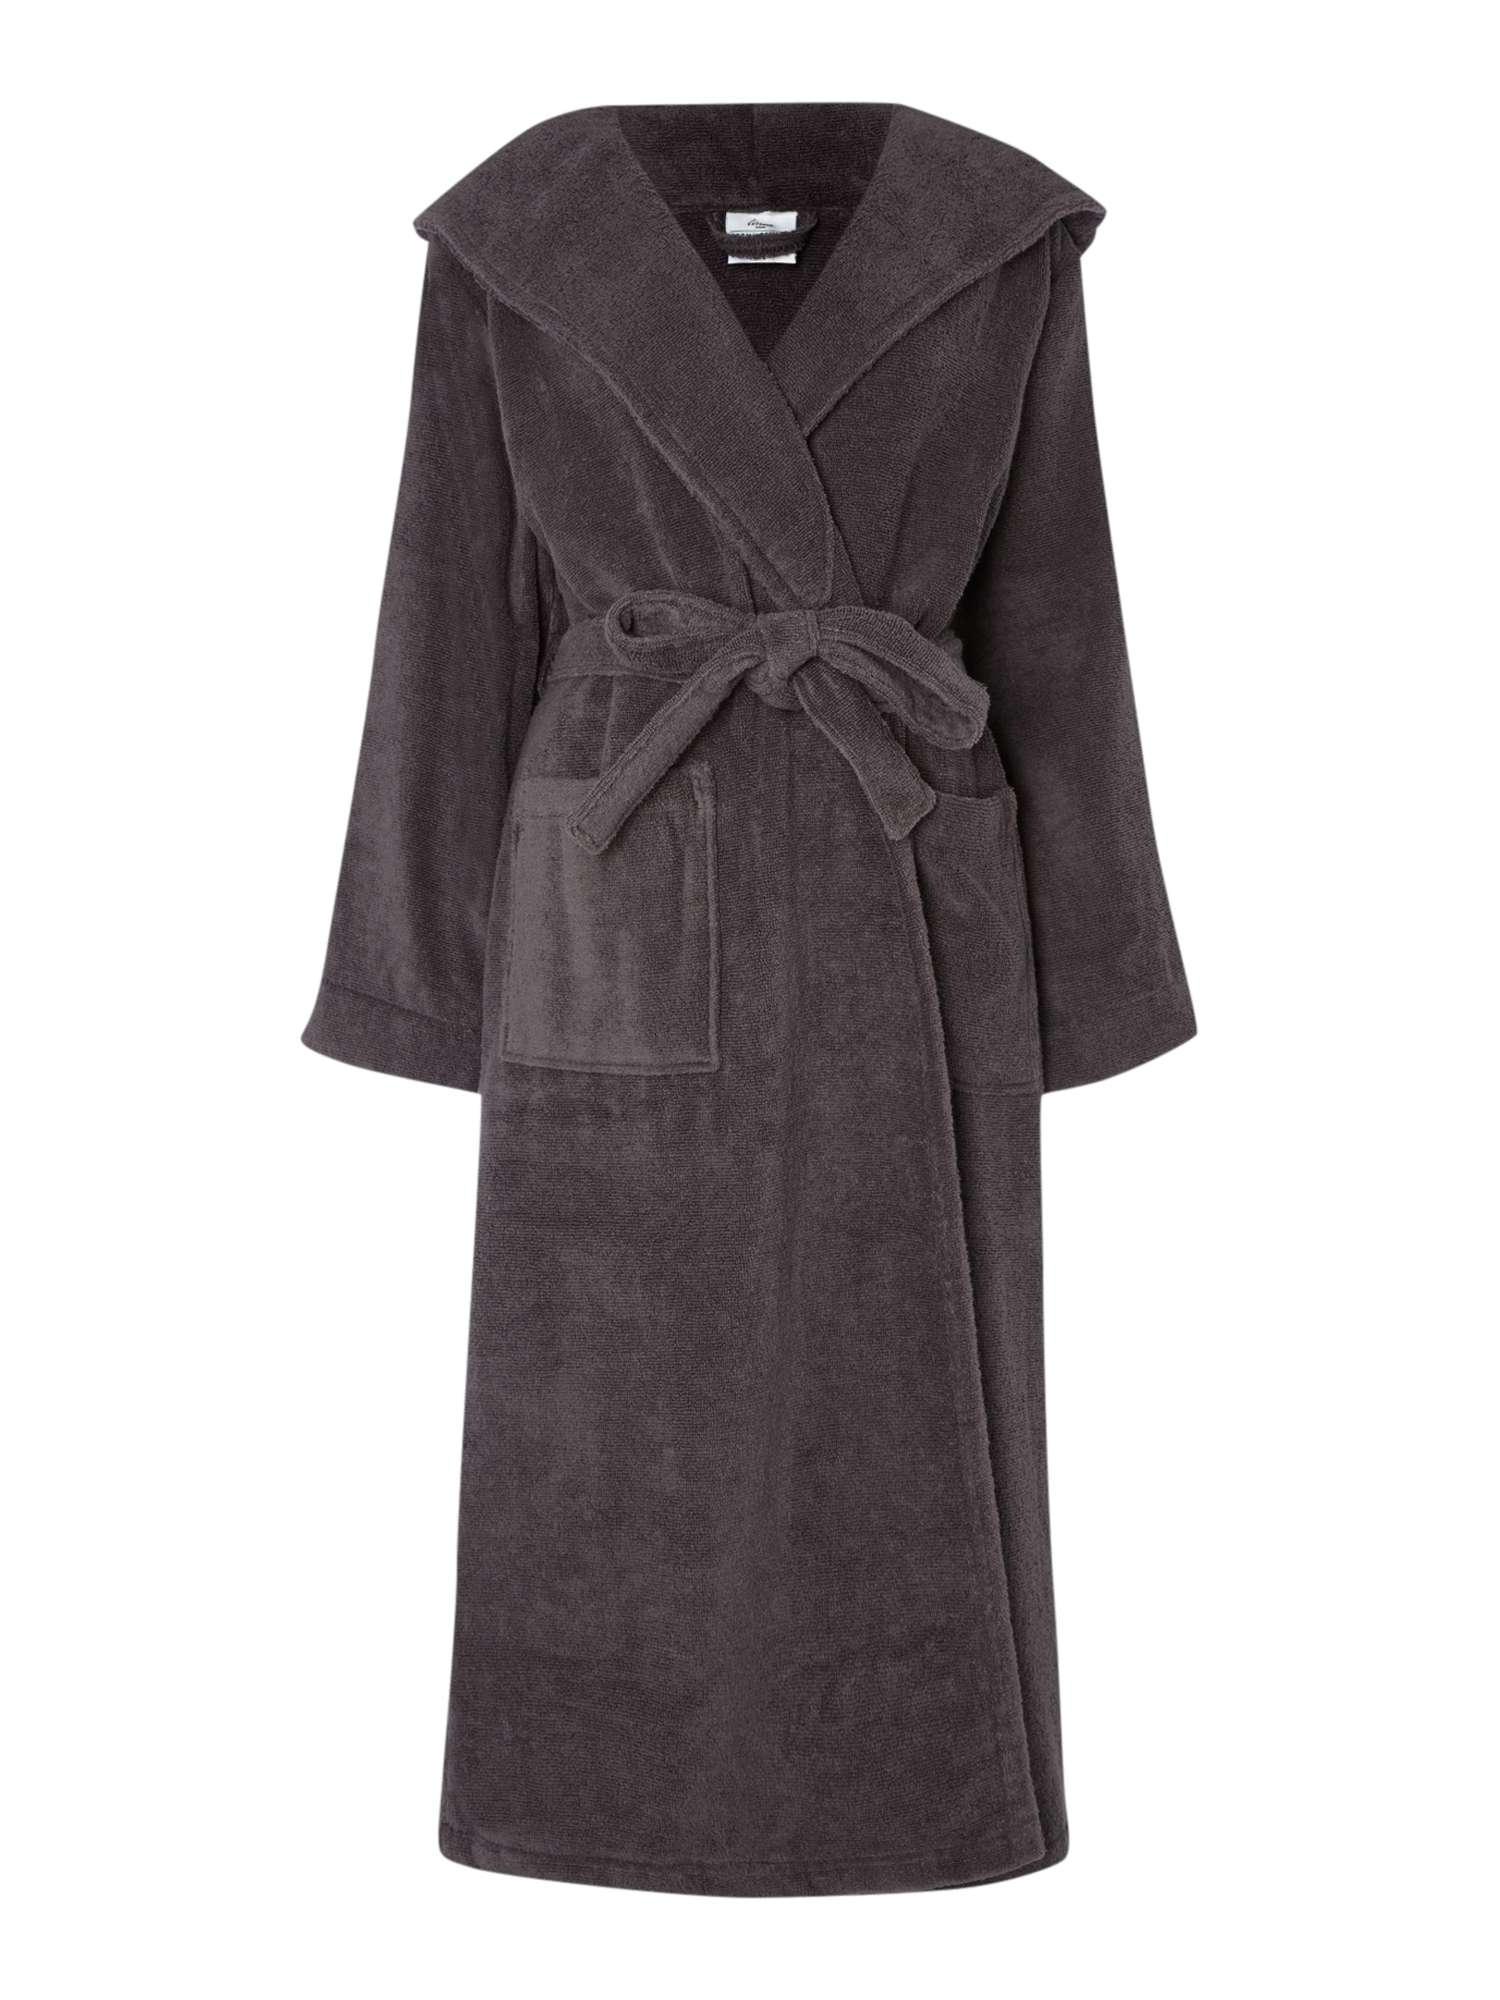 Bathrobes | Towelling Robes - House of Fraser